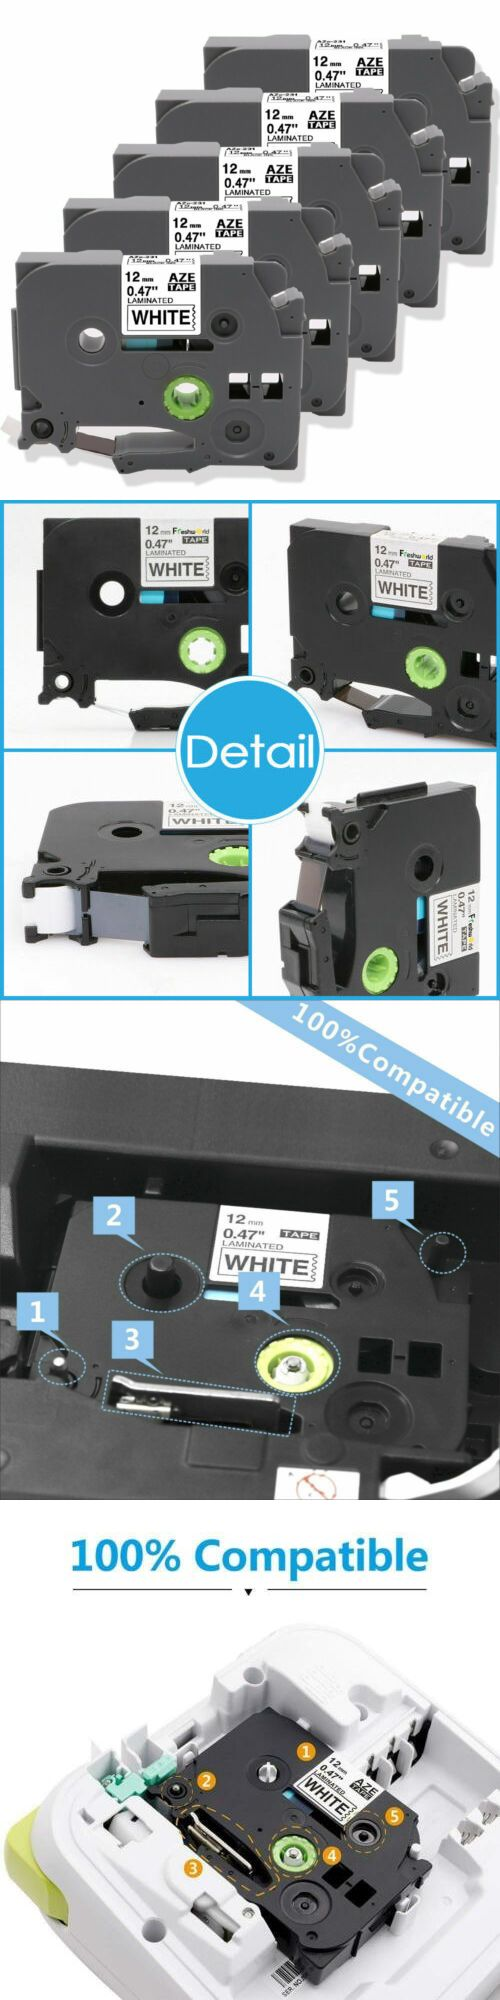 Other Ink Toner And Paper 175705 5pk 12mm Compatible For Brother P Touch Tz 231 Tze 231 Pt D210 Label Maker Tape B Ink Toner Label Maker Tape Label Printer